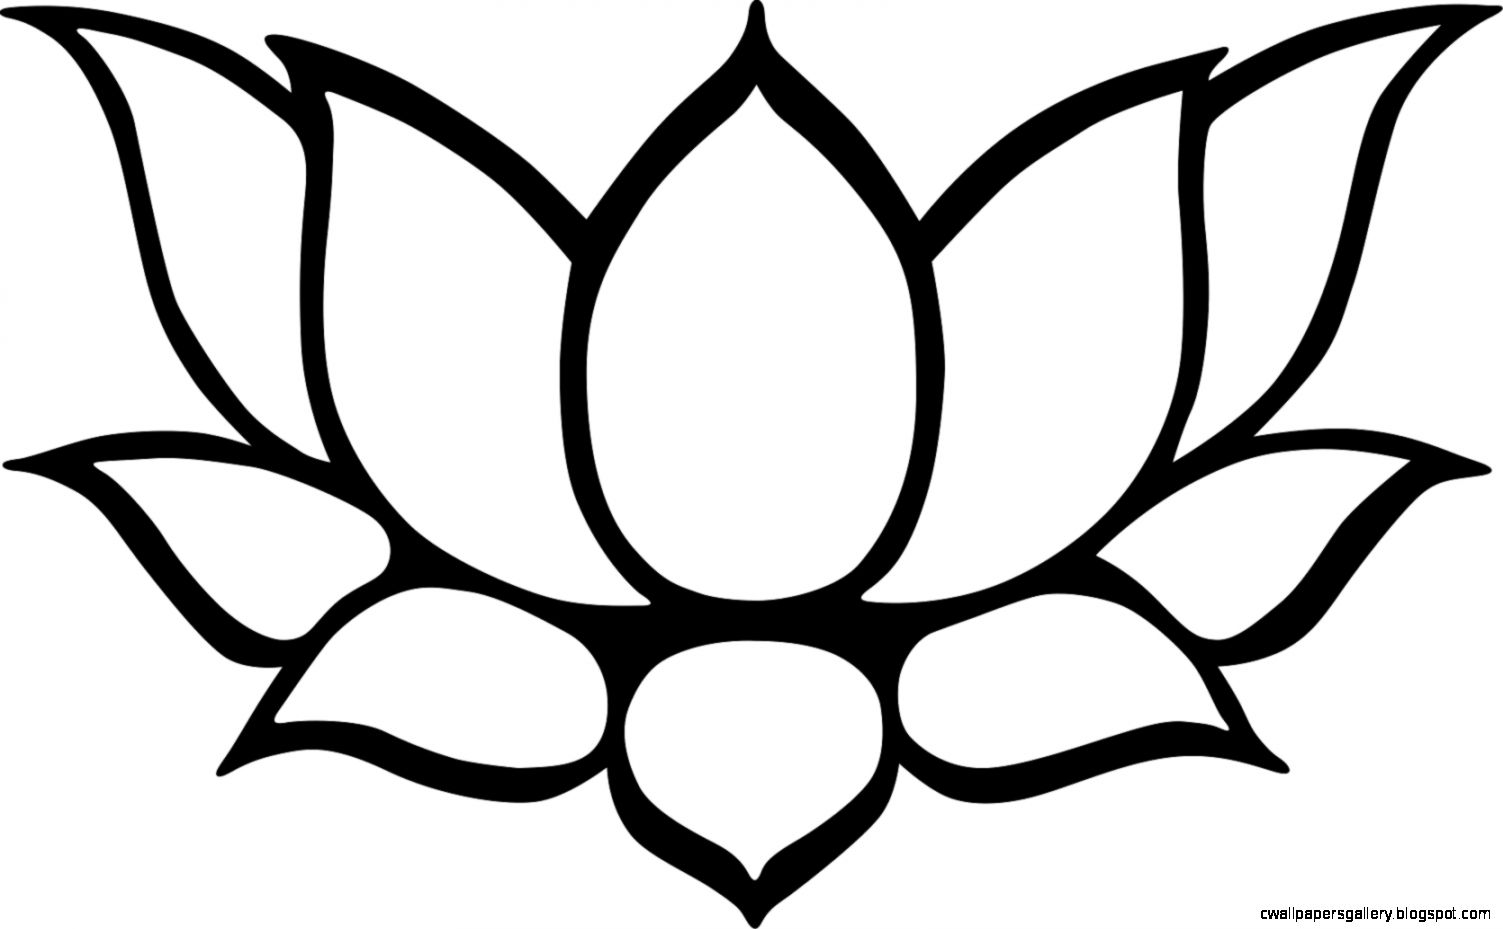 Lotus clipart. Flower drawing outline at